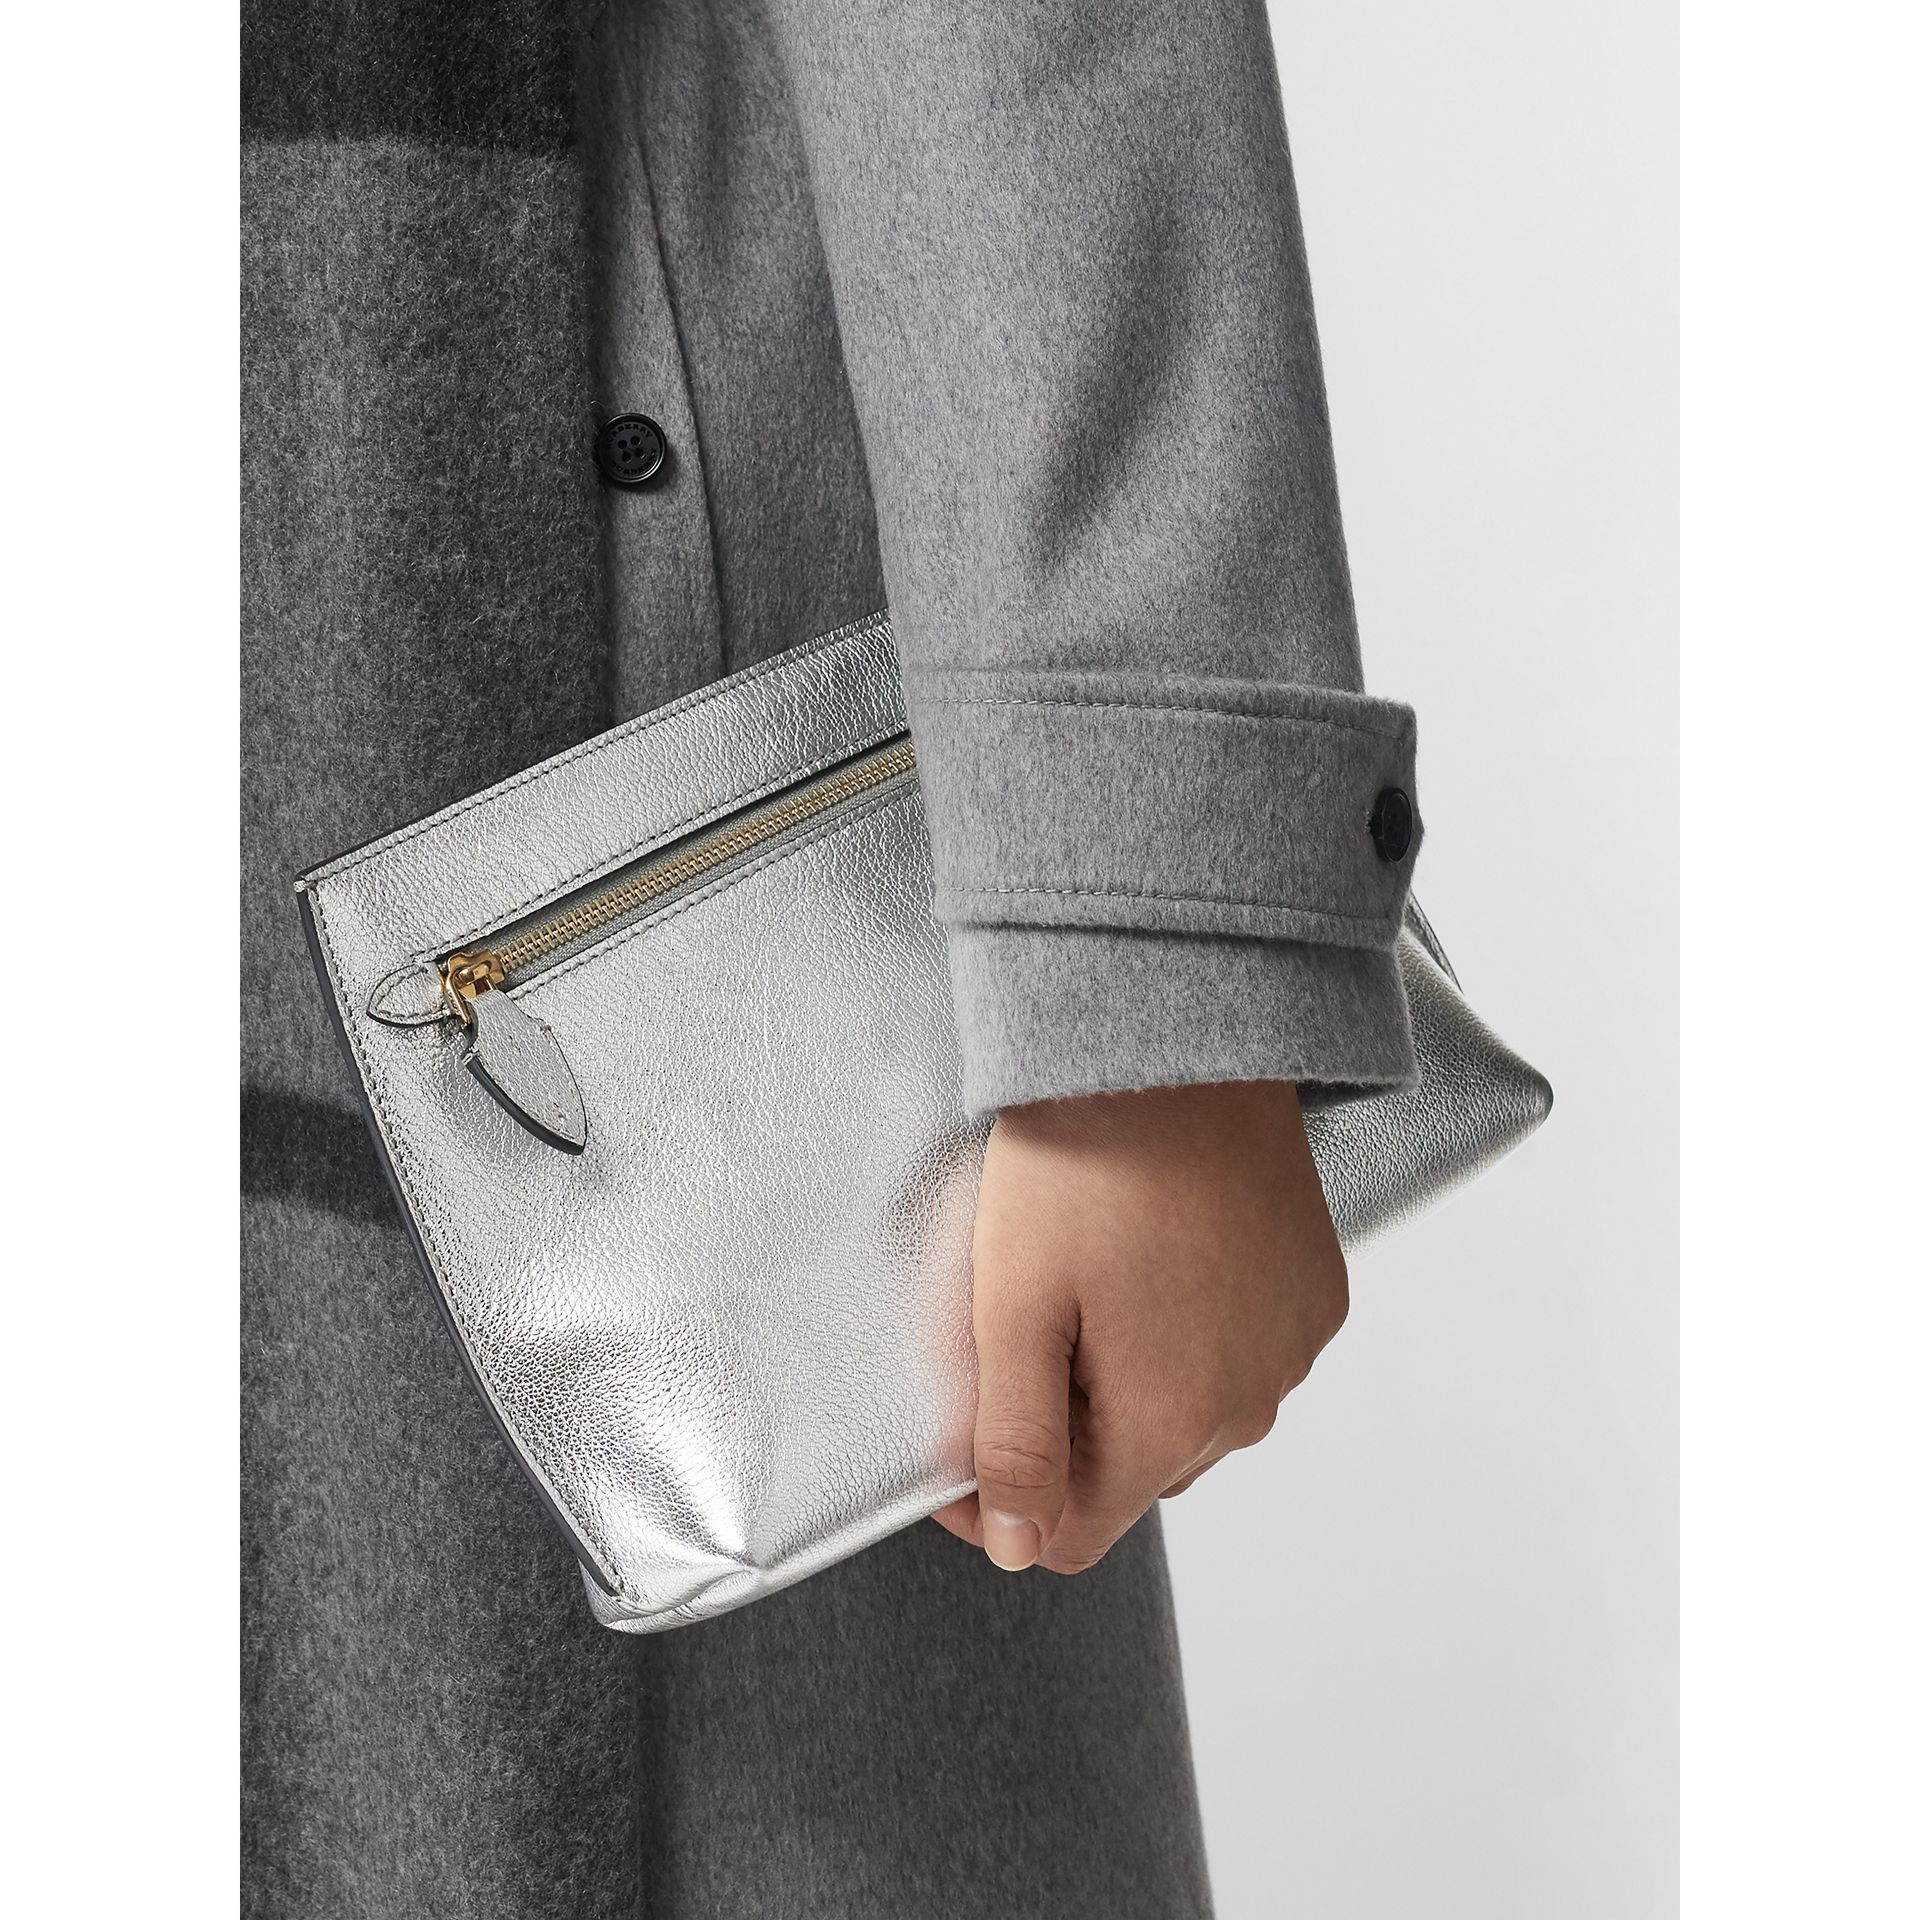 Metallic Leather Wristlet Clutch in Silver - Women | Burberry - gallery image 3